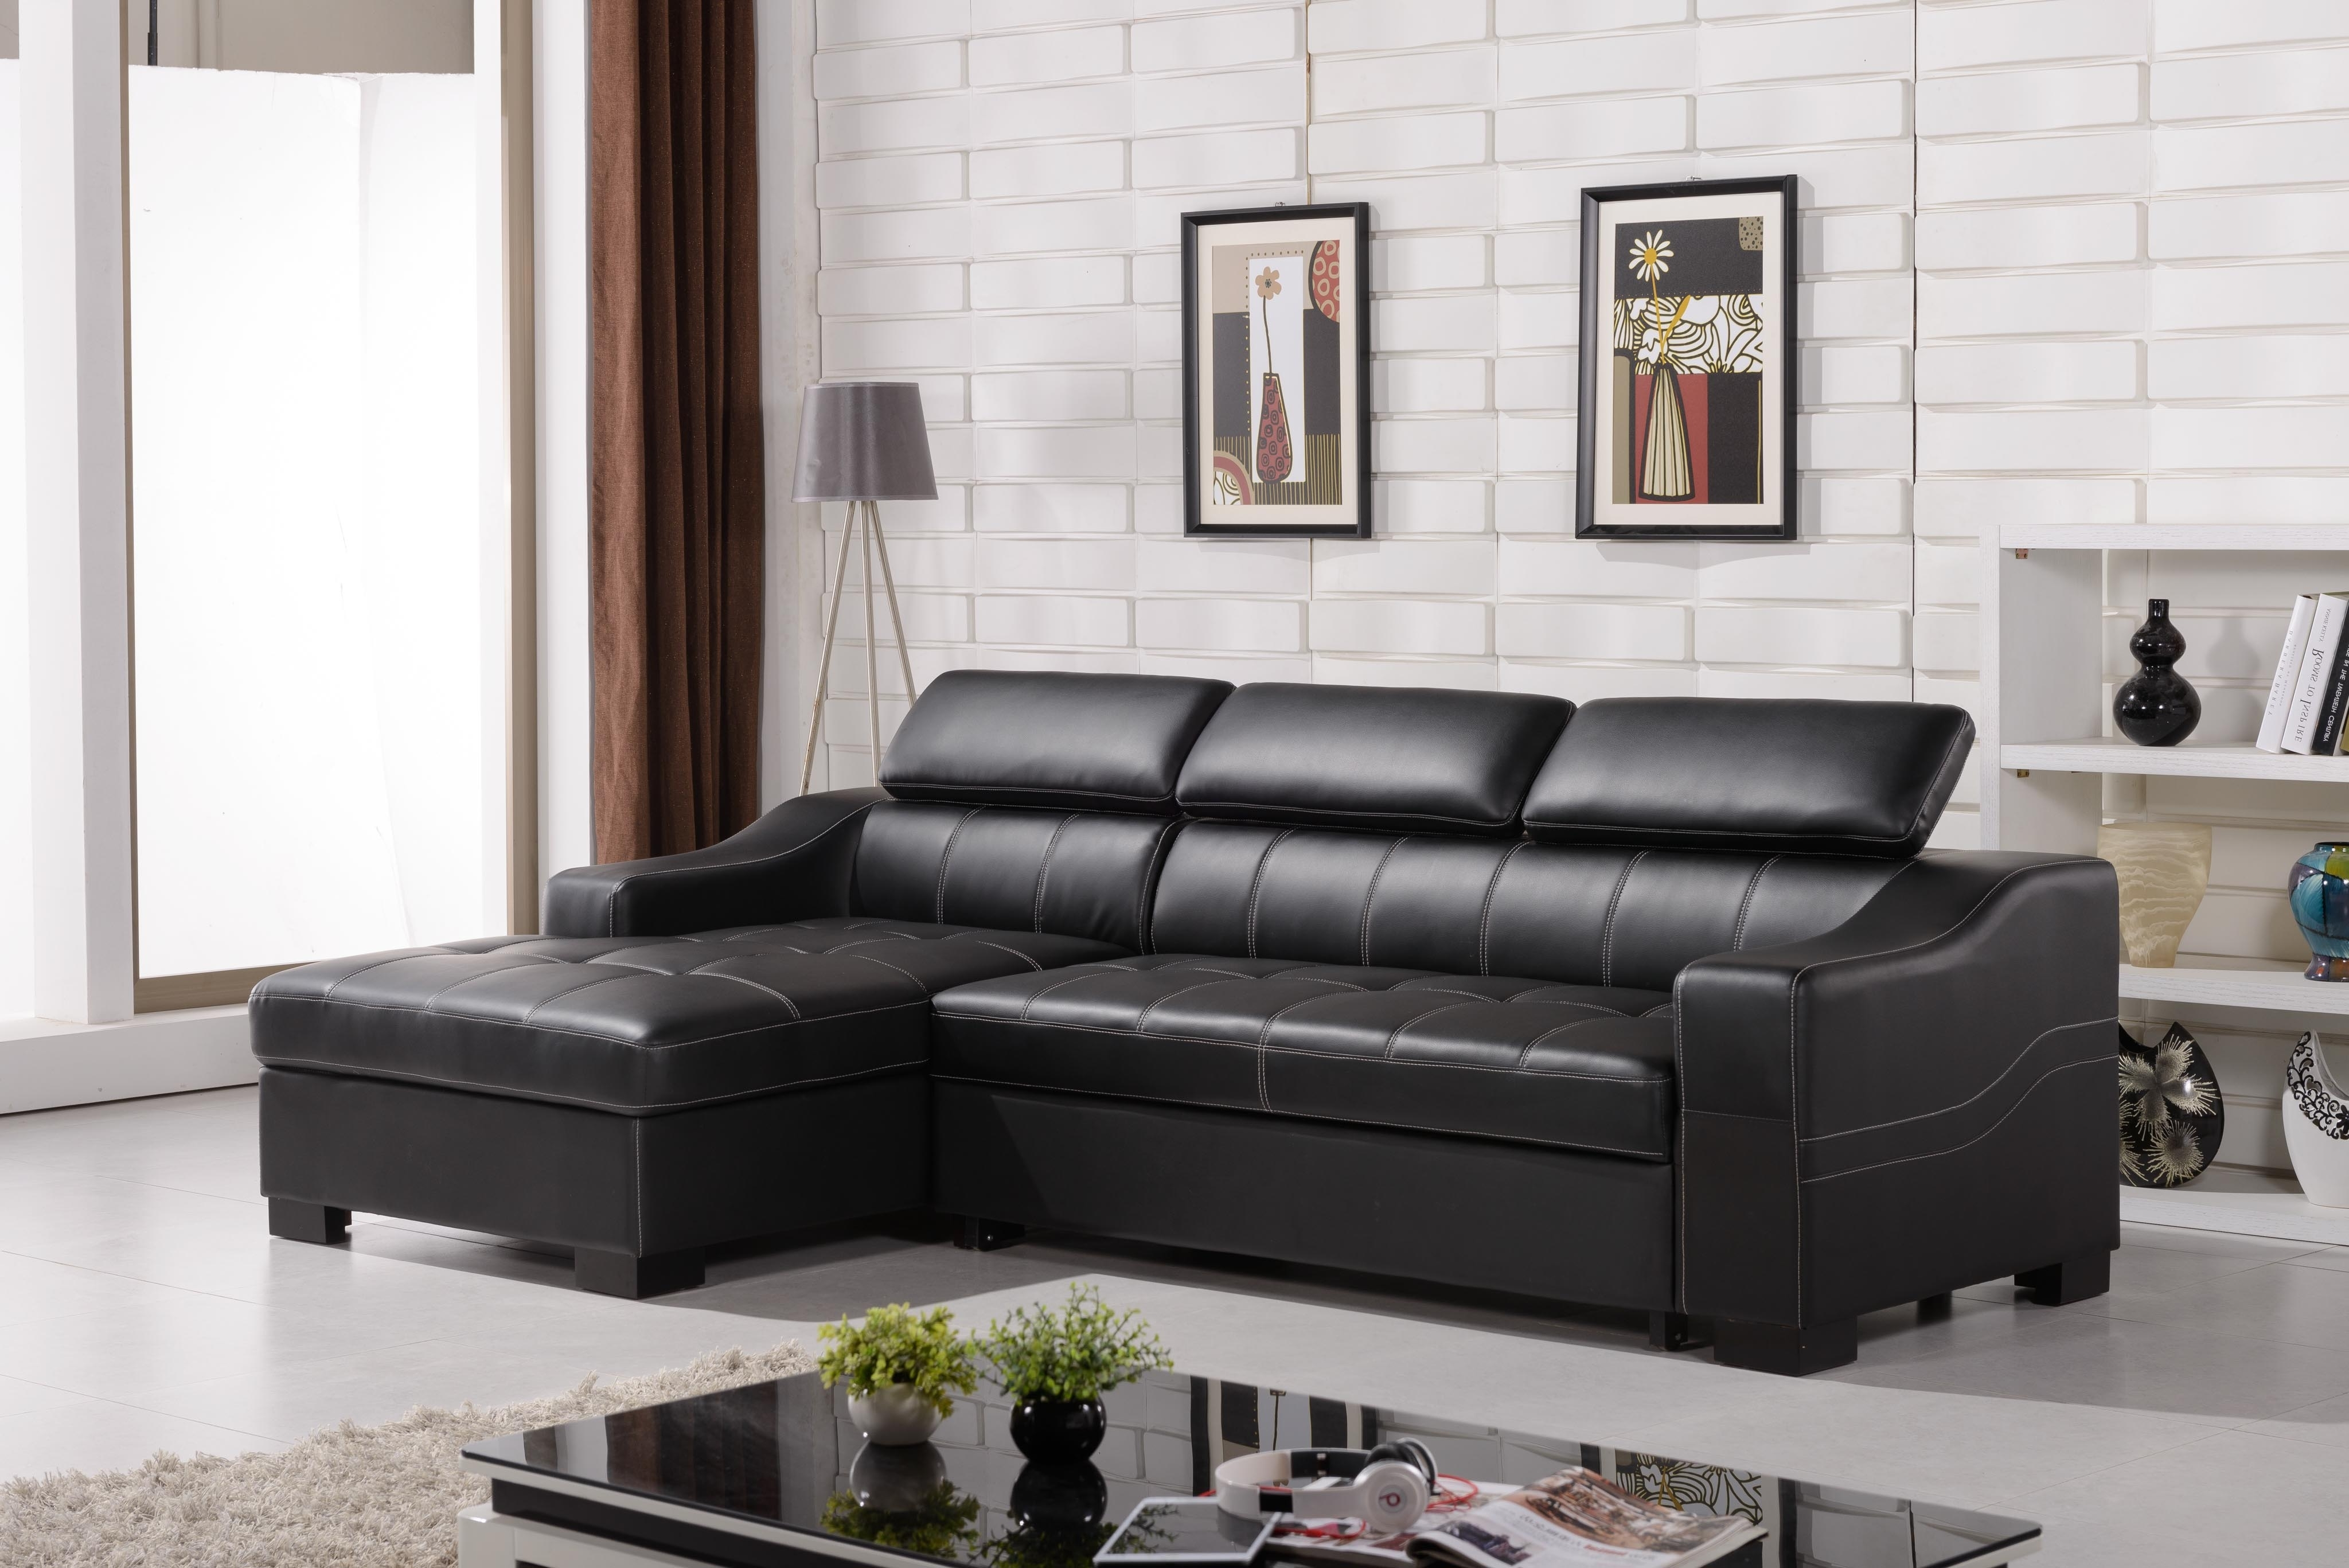 Homesfeed Within Sectional Sofas That Turn Into Beds (View 5 of 20)